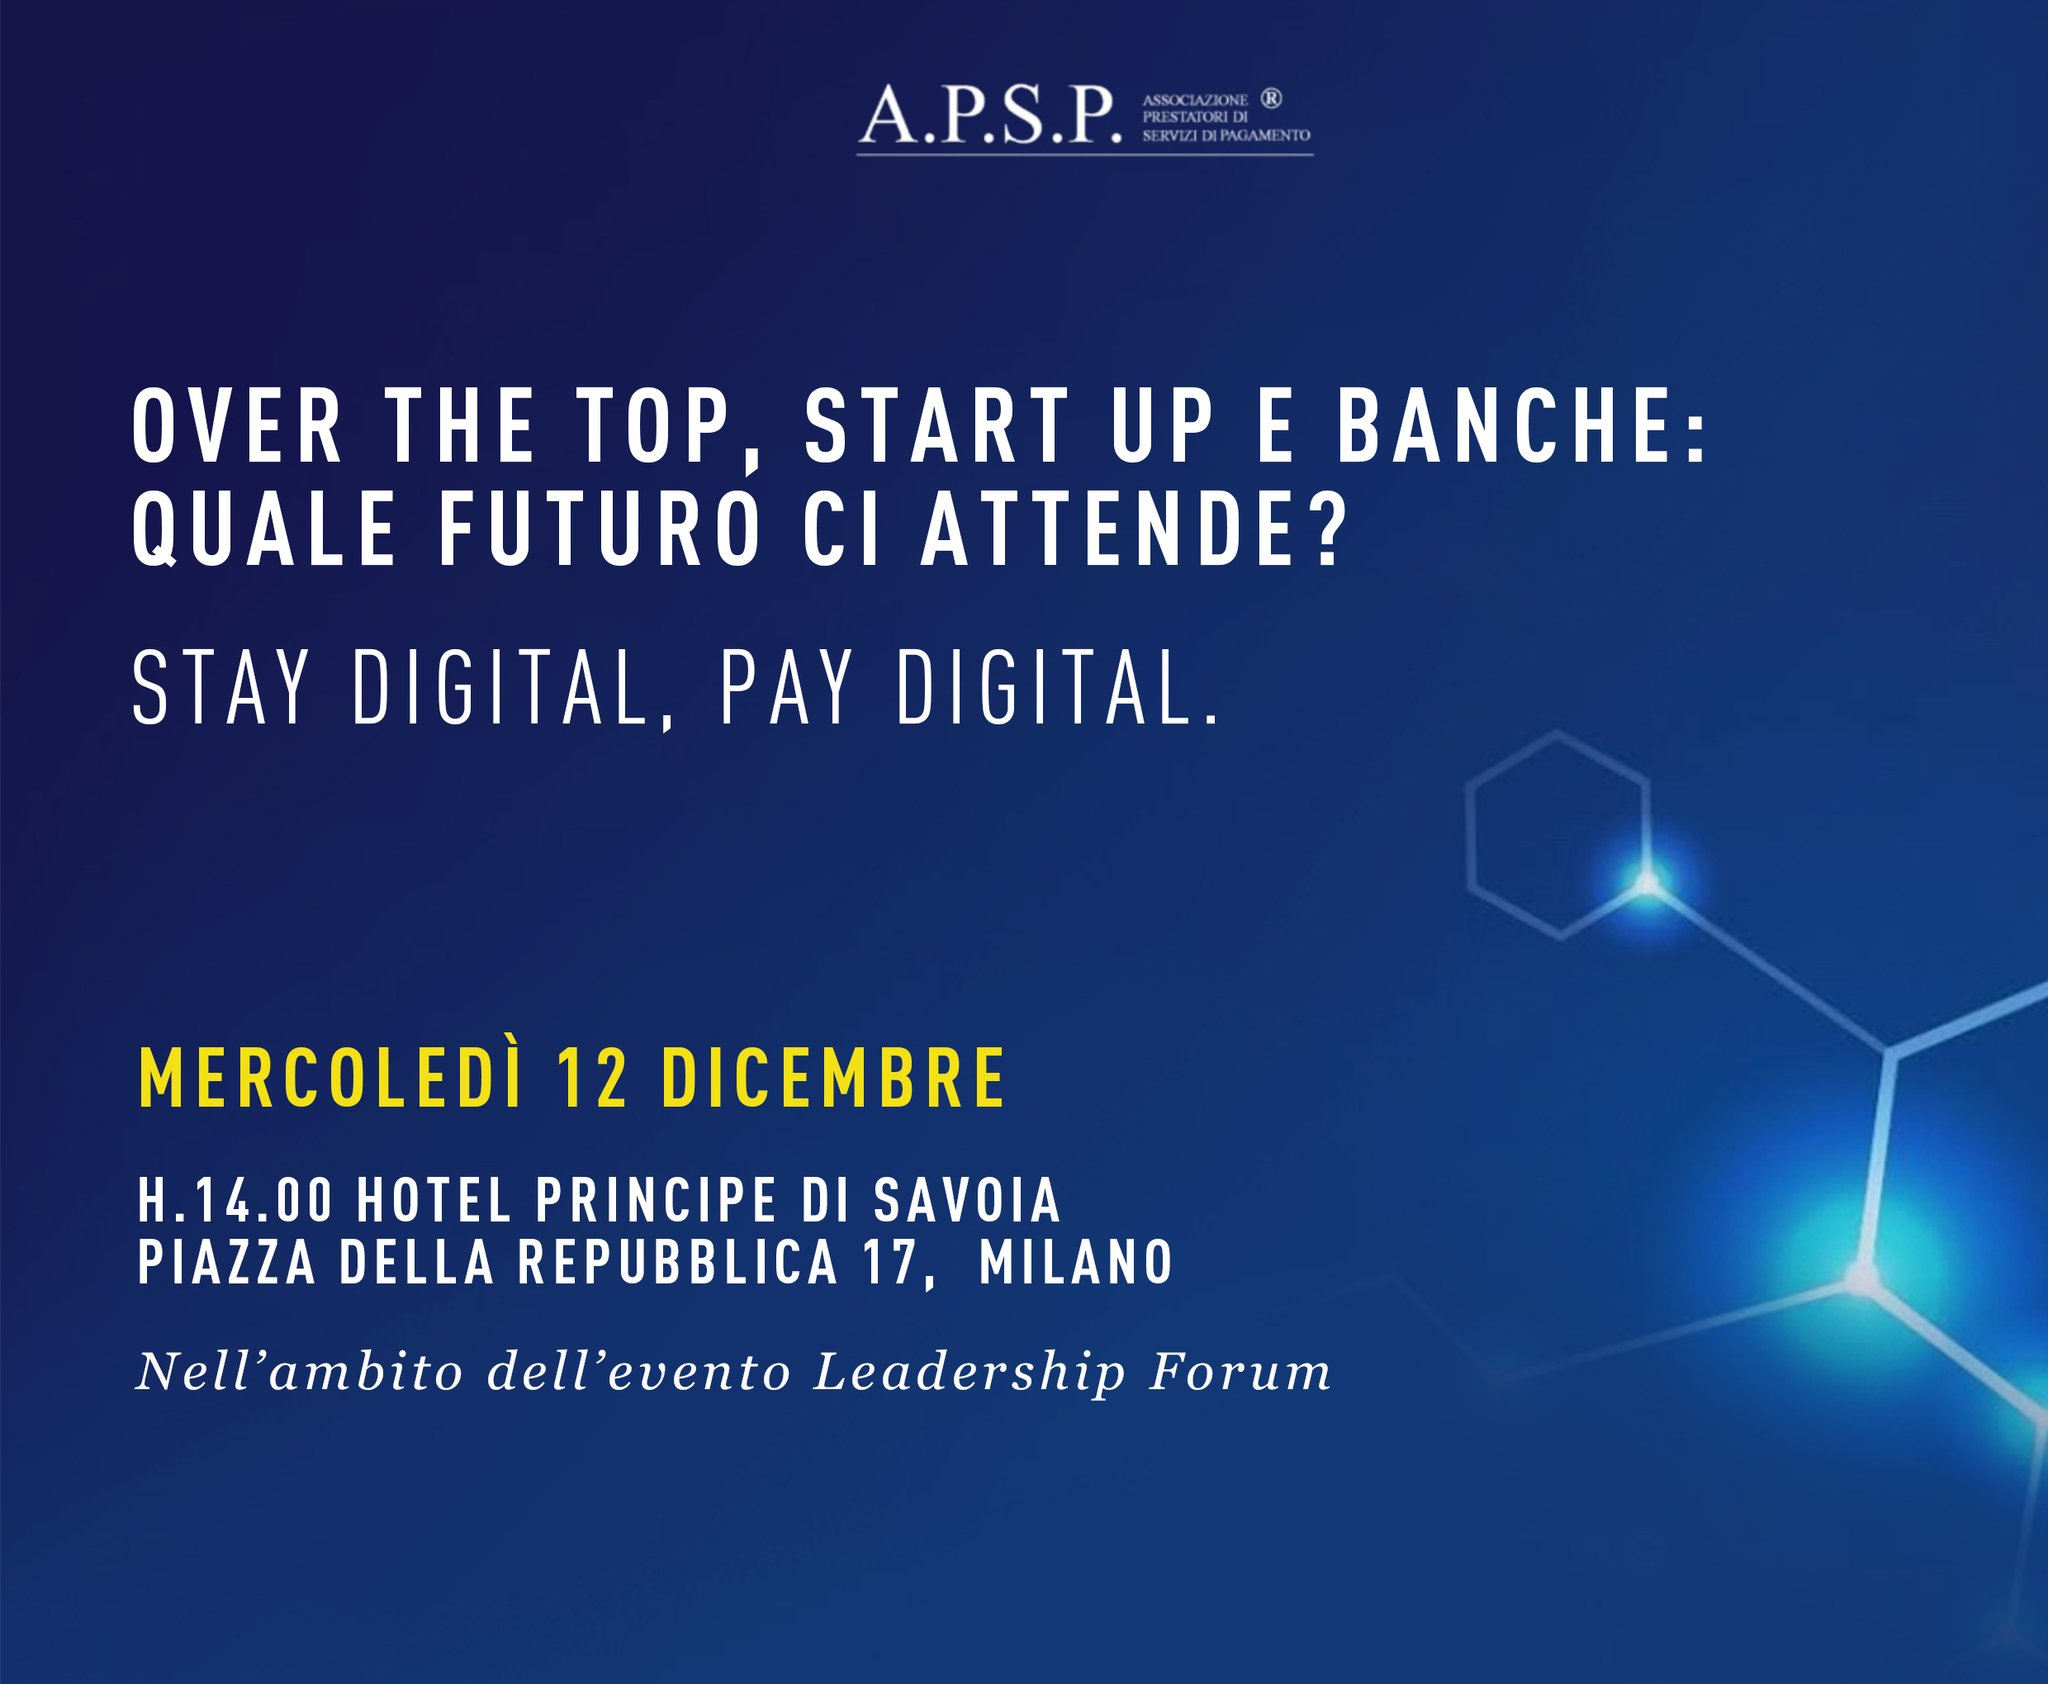 Over the top, start up e banche: quale futuro ci attende?